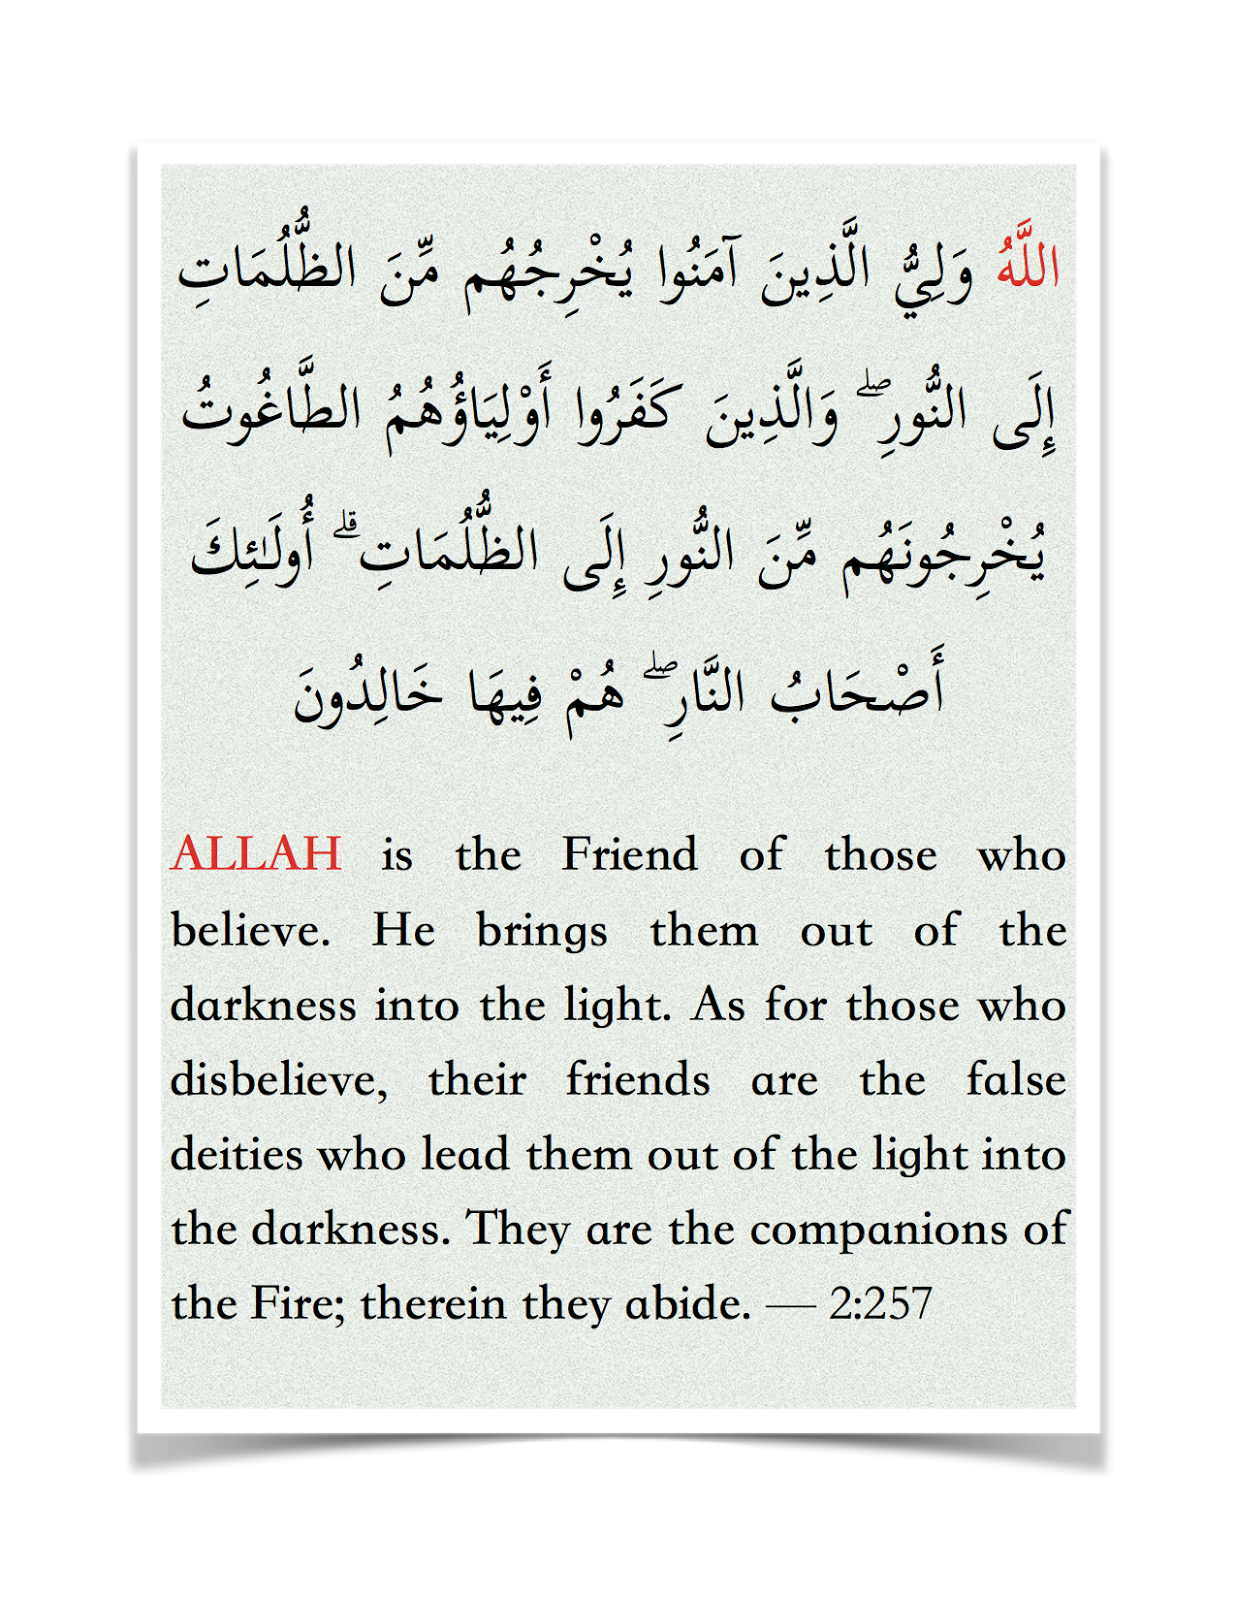 Quranic Words Dictionary